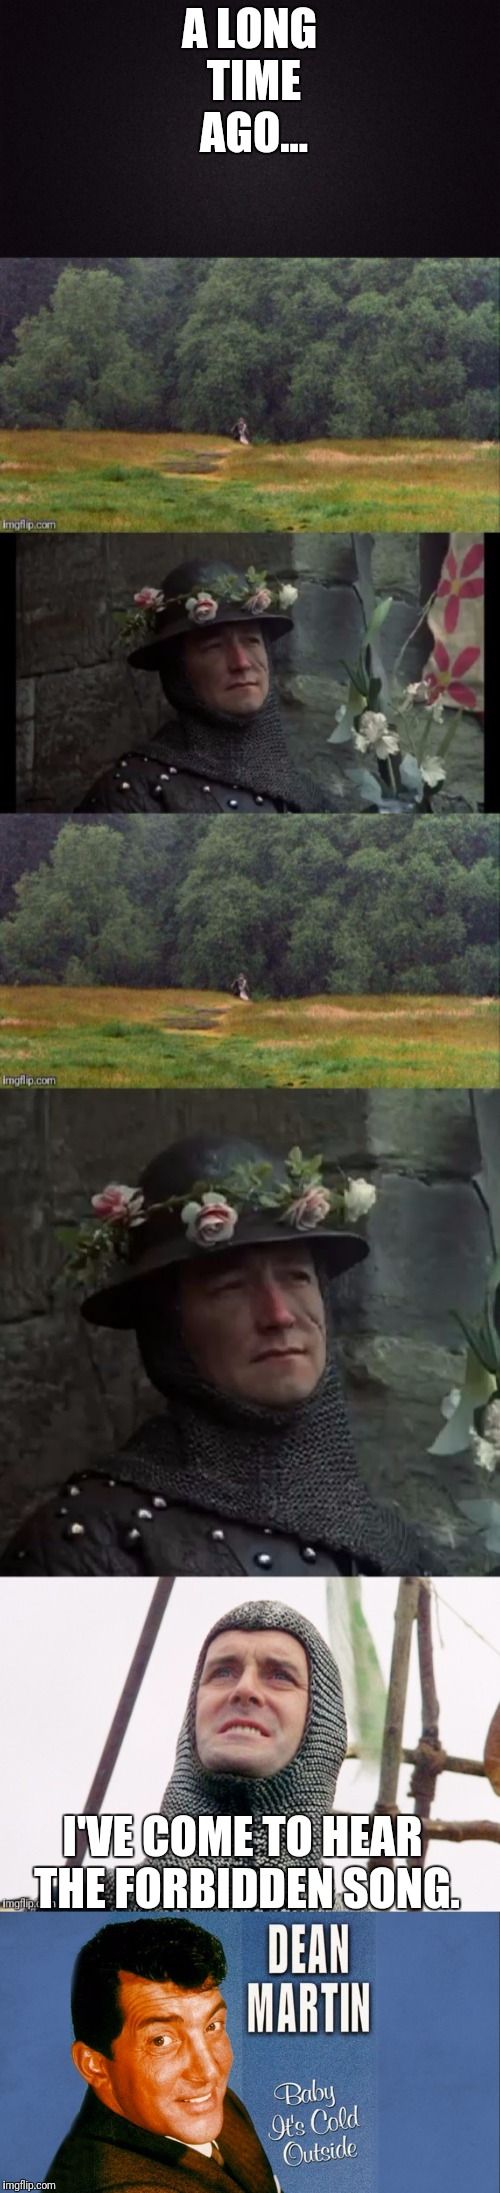 A Quest For A Brave Man Full Of Courage And Of Sound Mind The Quest Not For Gold Or Silver Nut Of Something,Something Elsewhere. | A LONG TIME AGO... I'VE COME TO HEAR THE FORBIDDEN SONG. | image tagged in monty python and the holy grail,holy grail,john cleese,dean martin | made w/ Imgflip meme maker